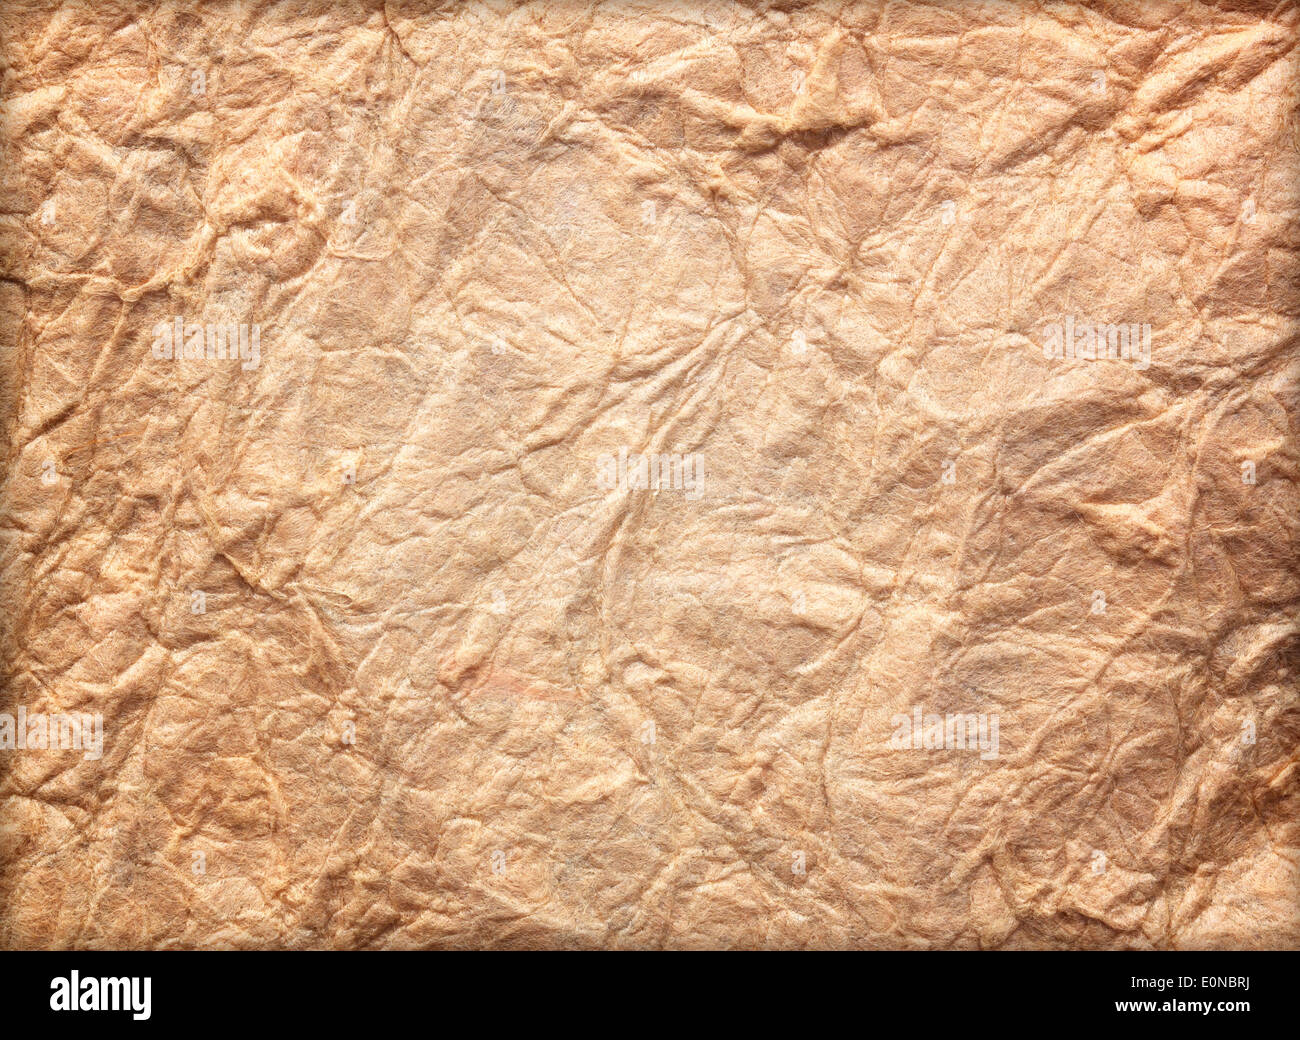 Paper texture brown paper sheet. Sheets of crumpled paper - Stock Image